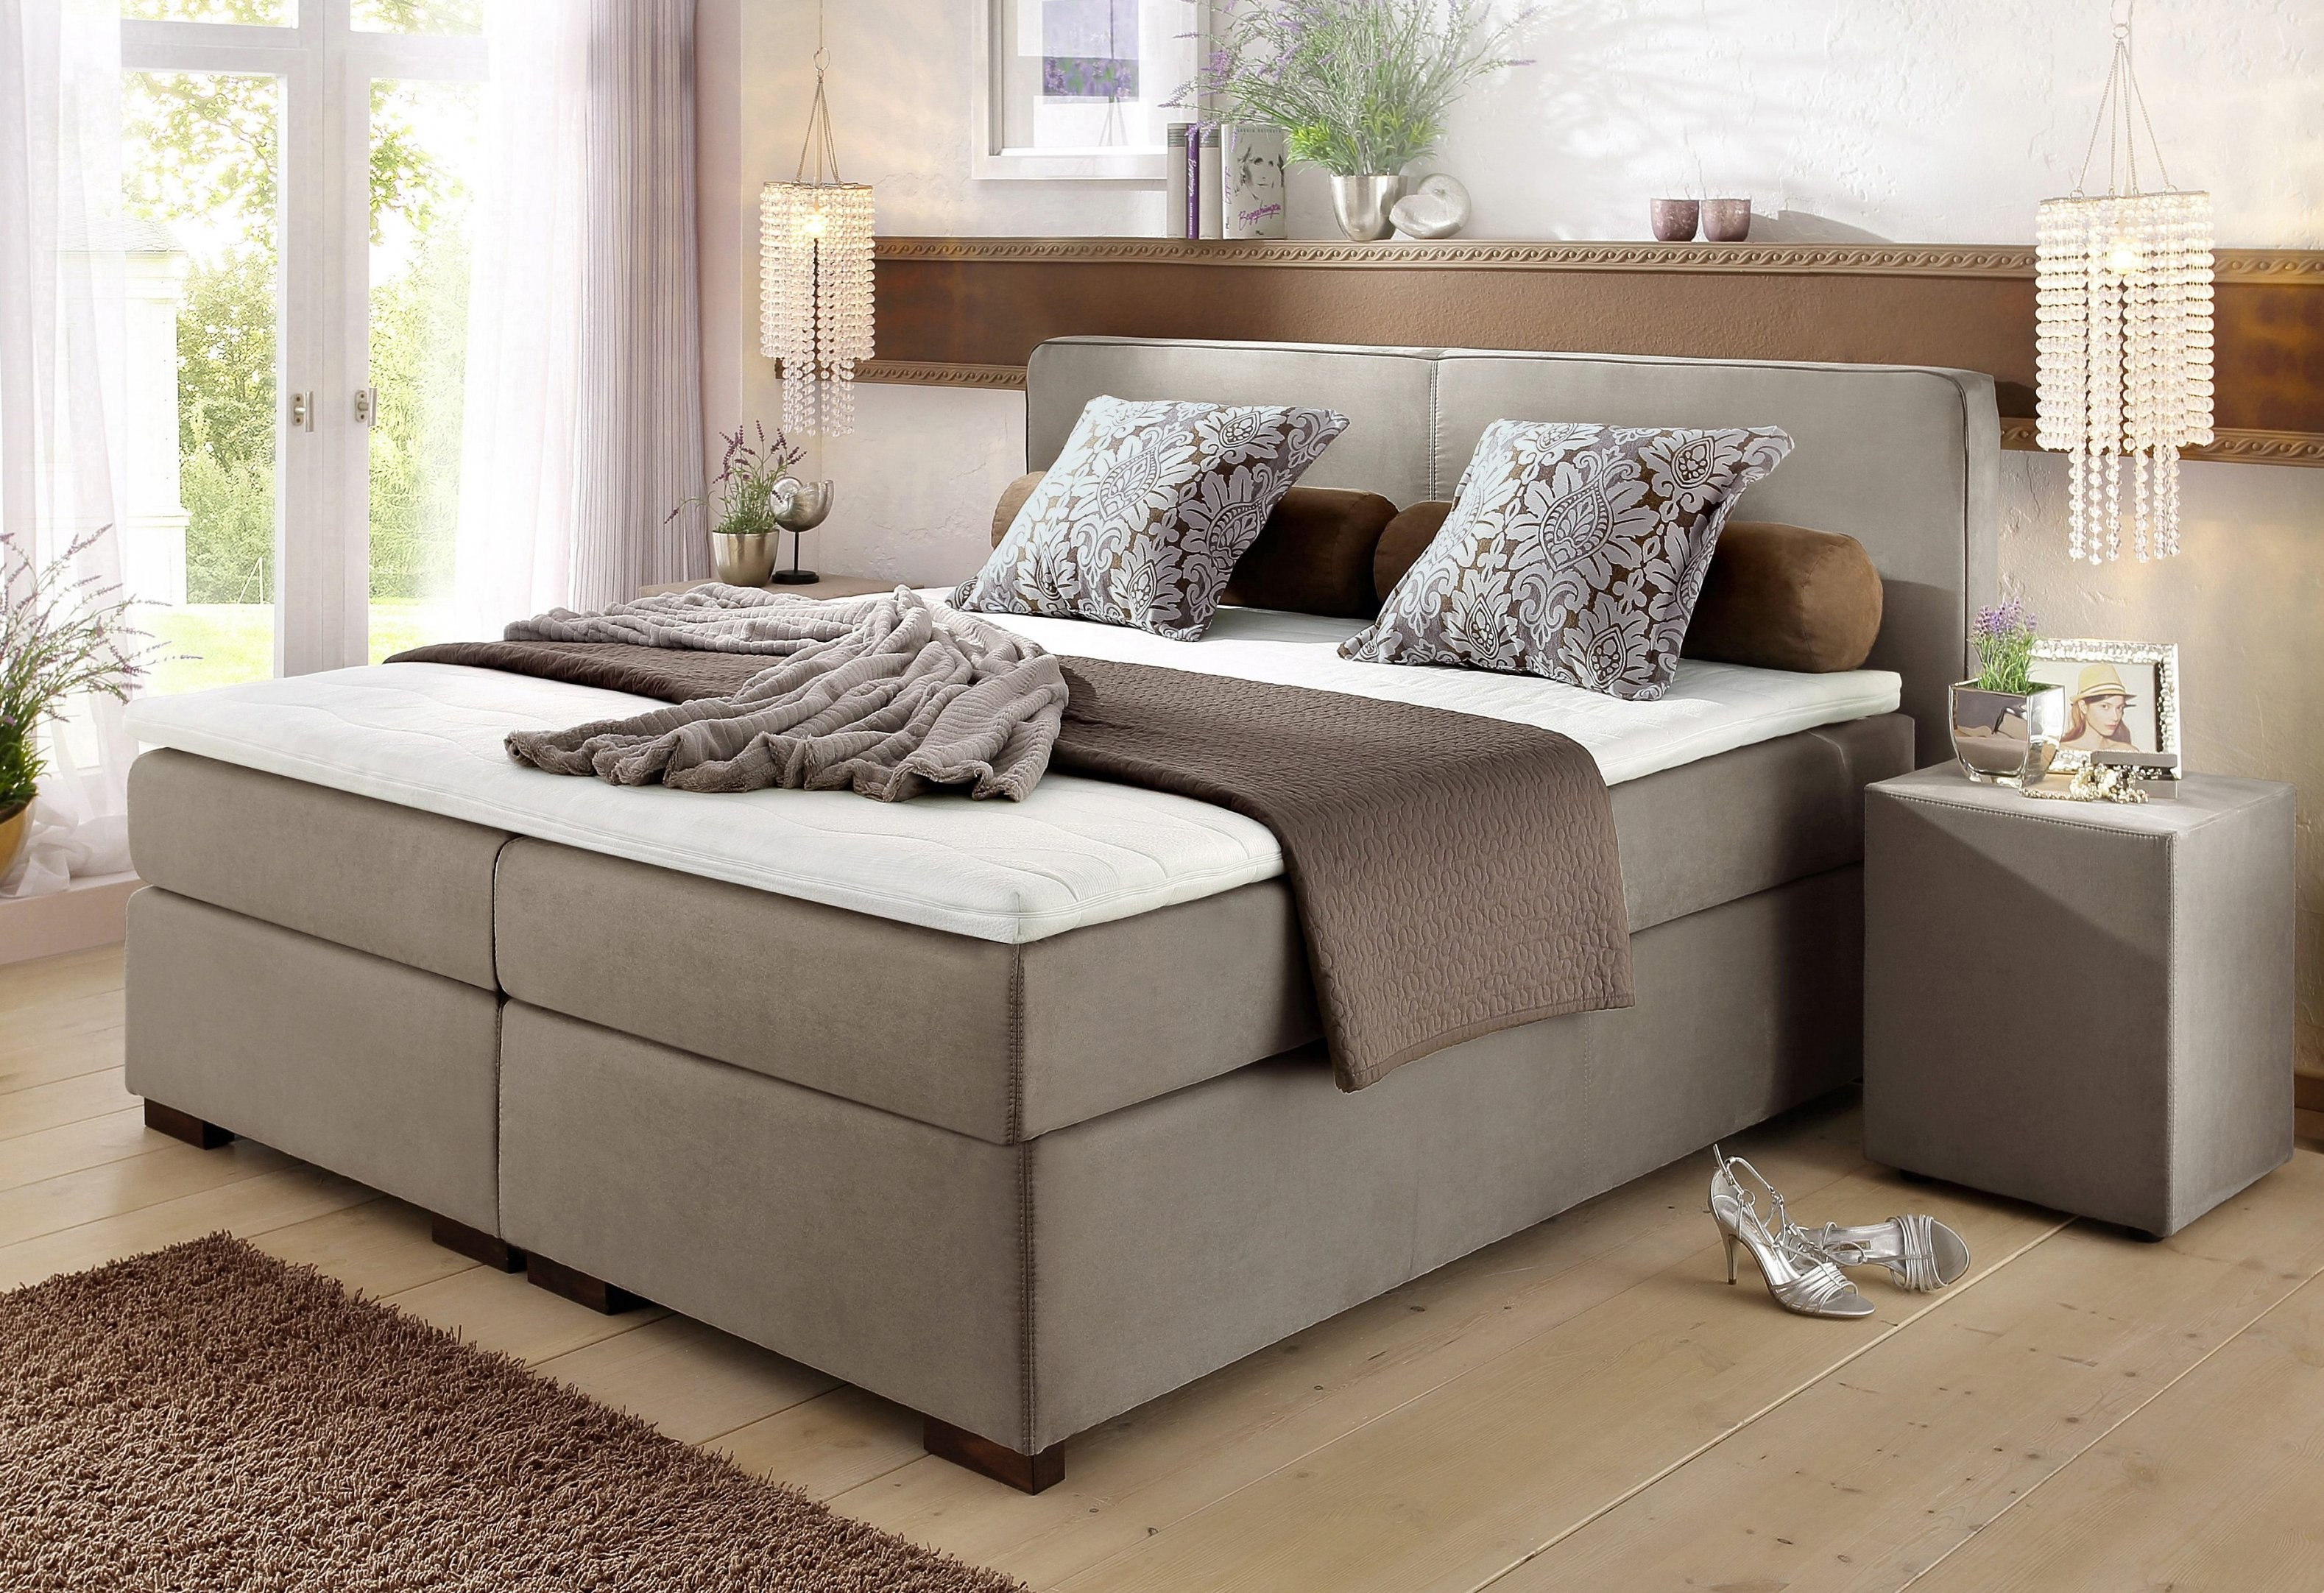 20% Sparen  Boxspringbett Romantica Inkl Topper+Kissen  Ab 79999 von Boxspring Bett Home Affaire Romantica Photo